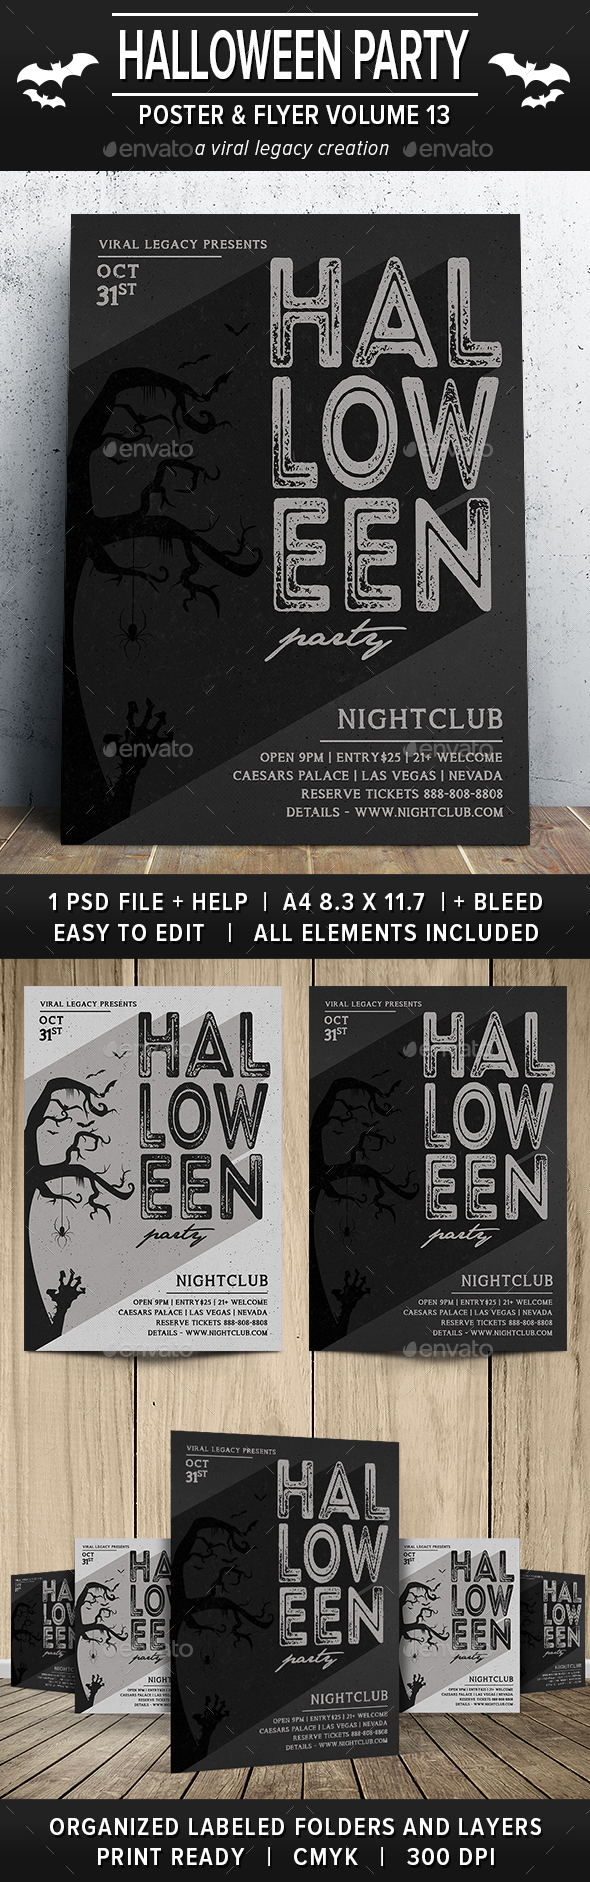 Halloween Party Poster / Flyer V13